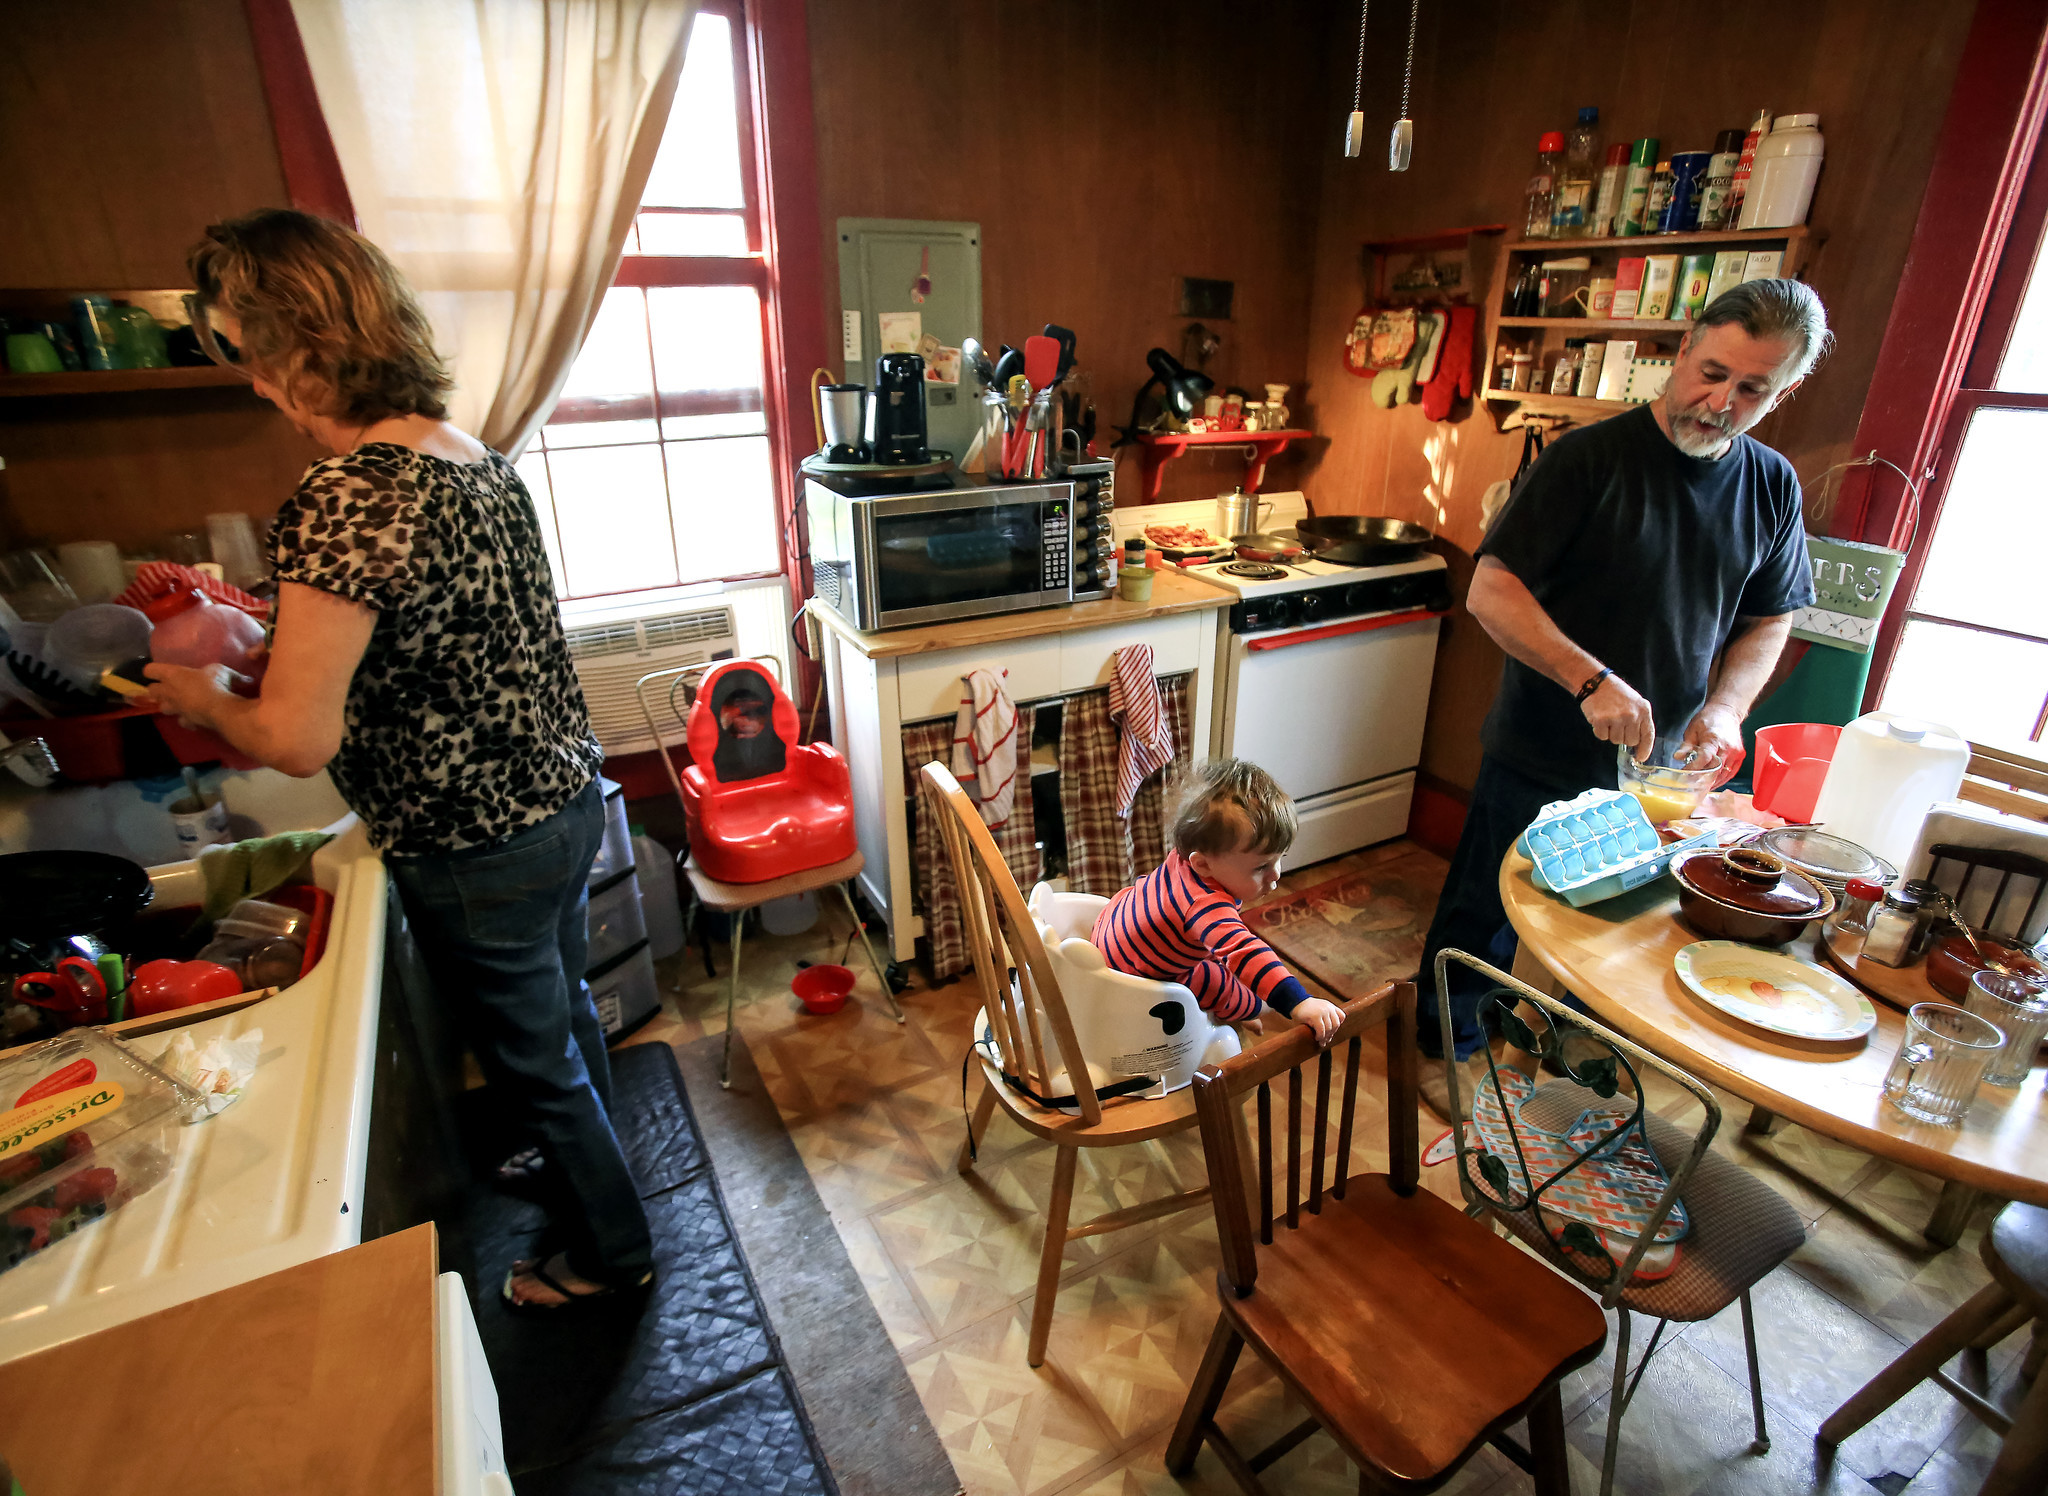 Mike and Lynne Belisle prepare breakfast in their kitchen while Mike also keeps an eye on one-year-old Nicholas at their Quincy home.